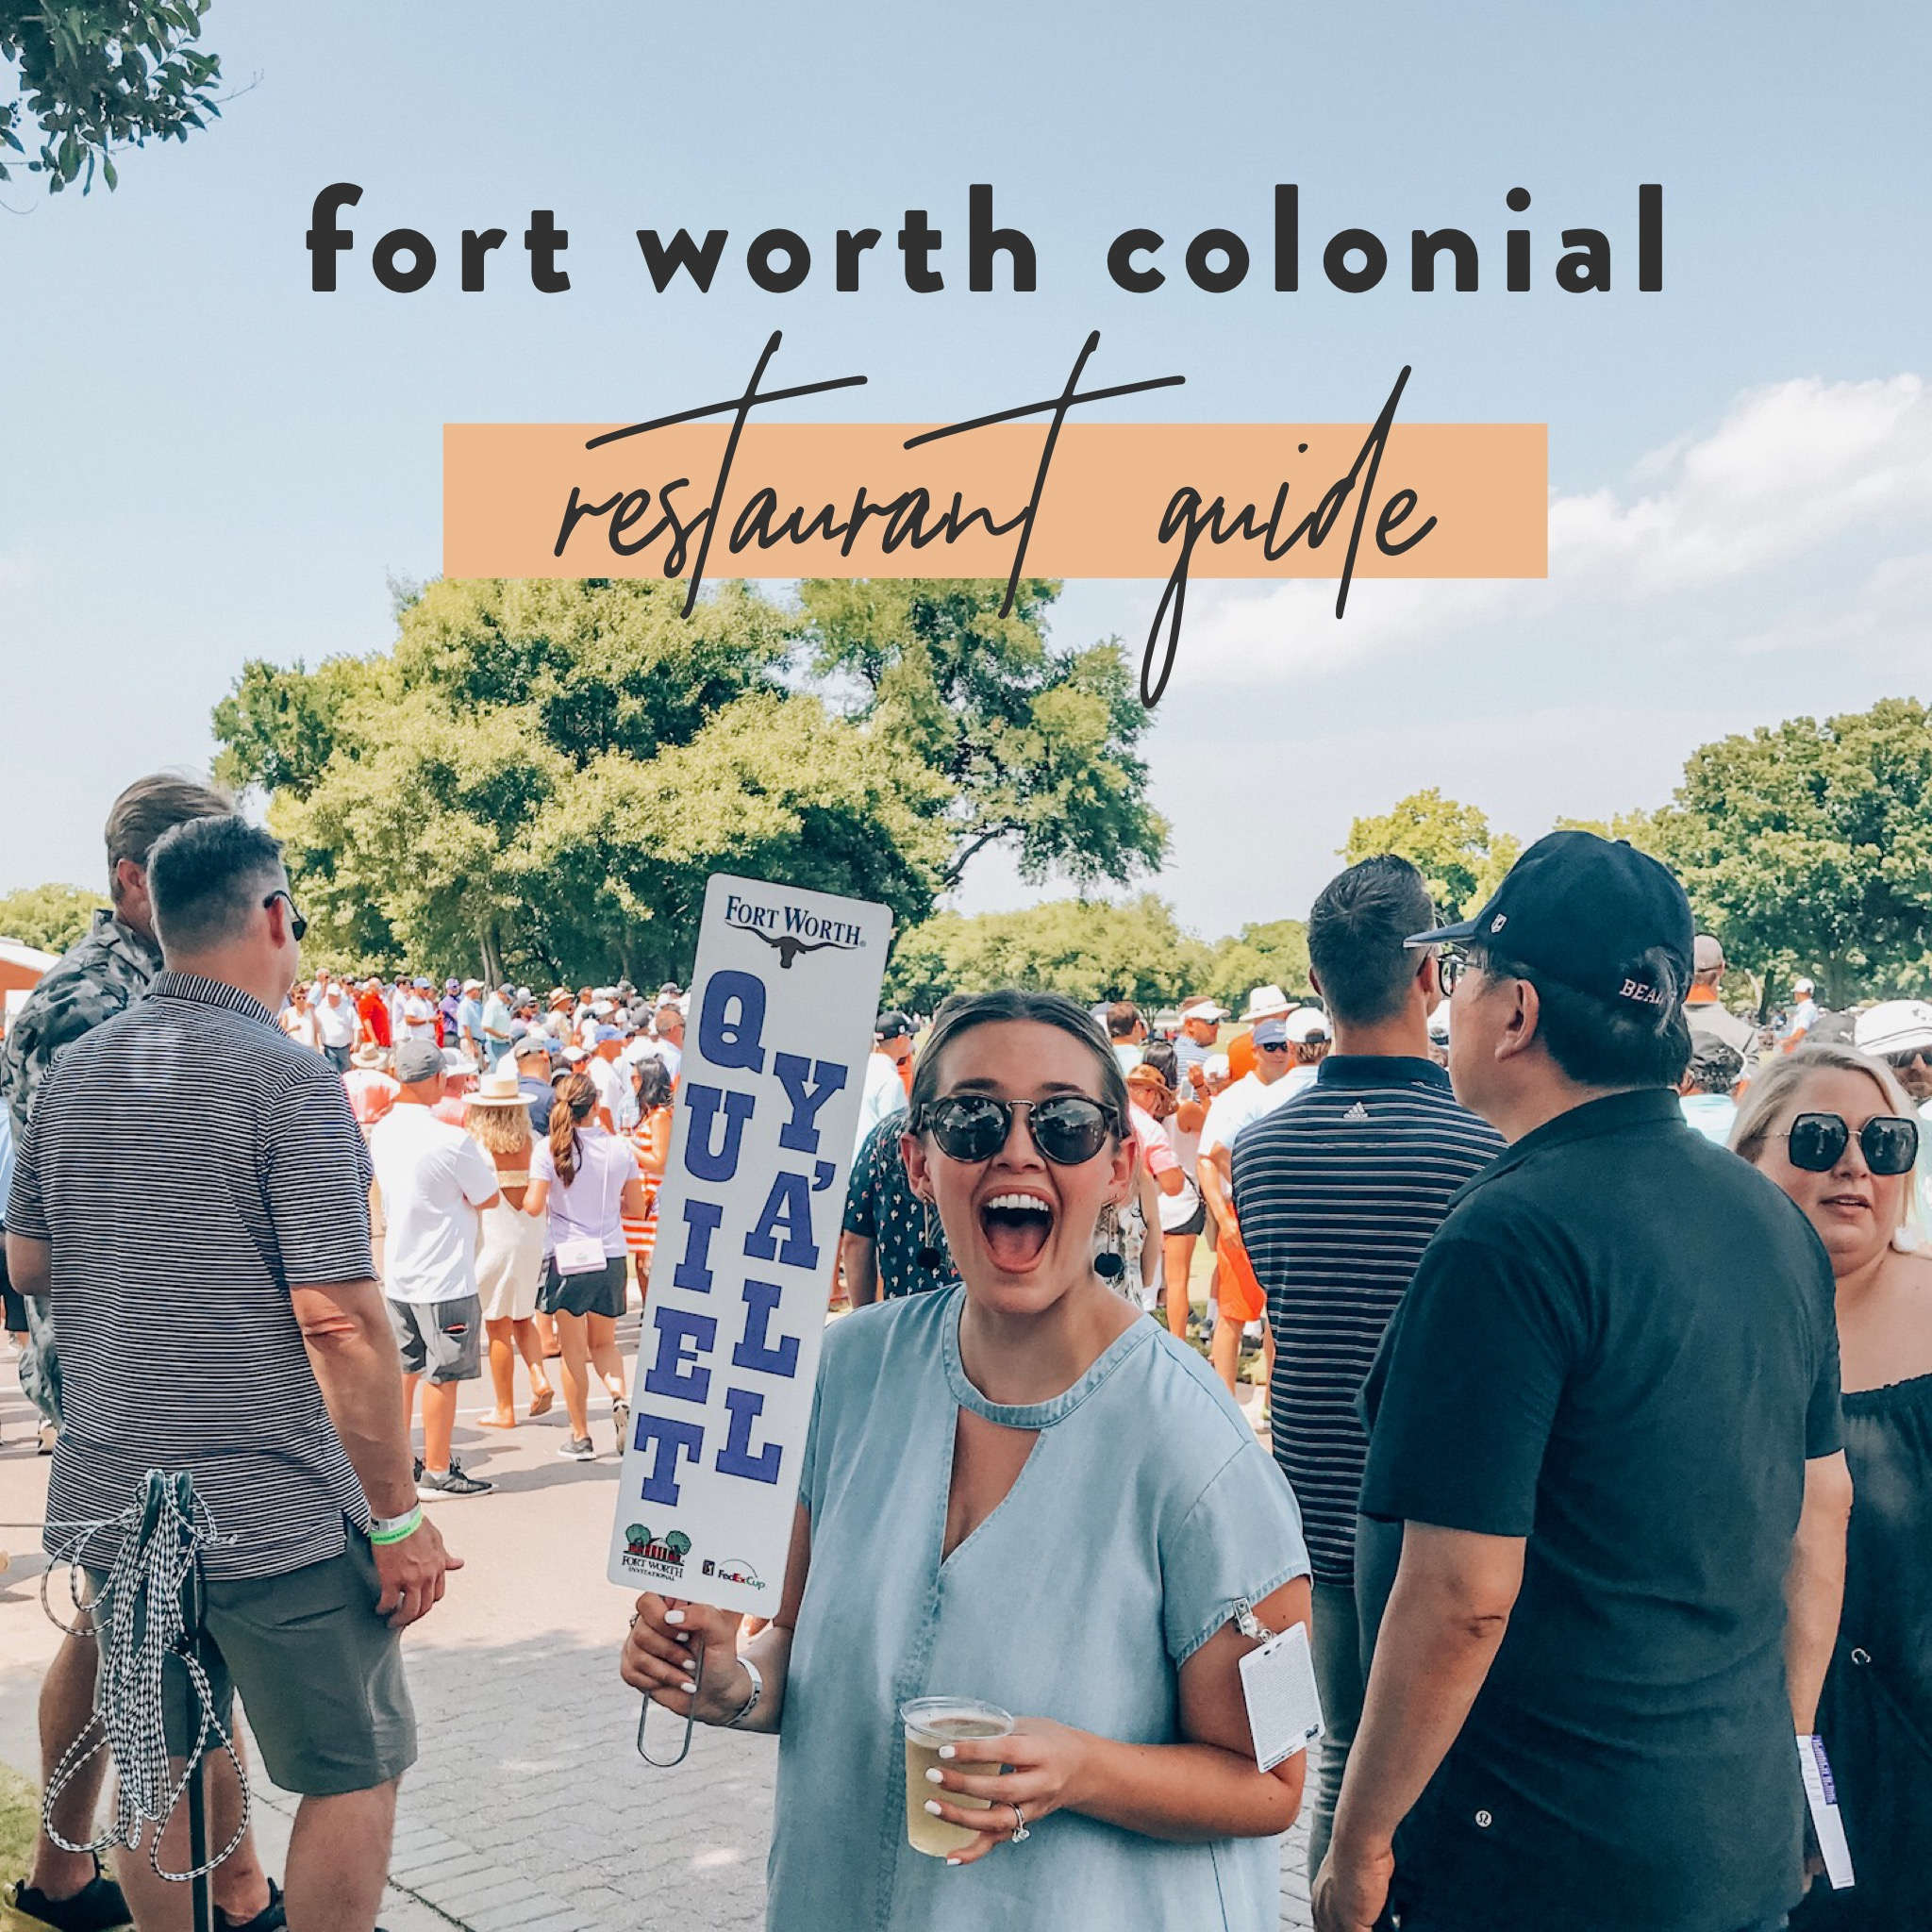 fort worth colonial restaurant guide